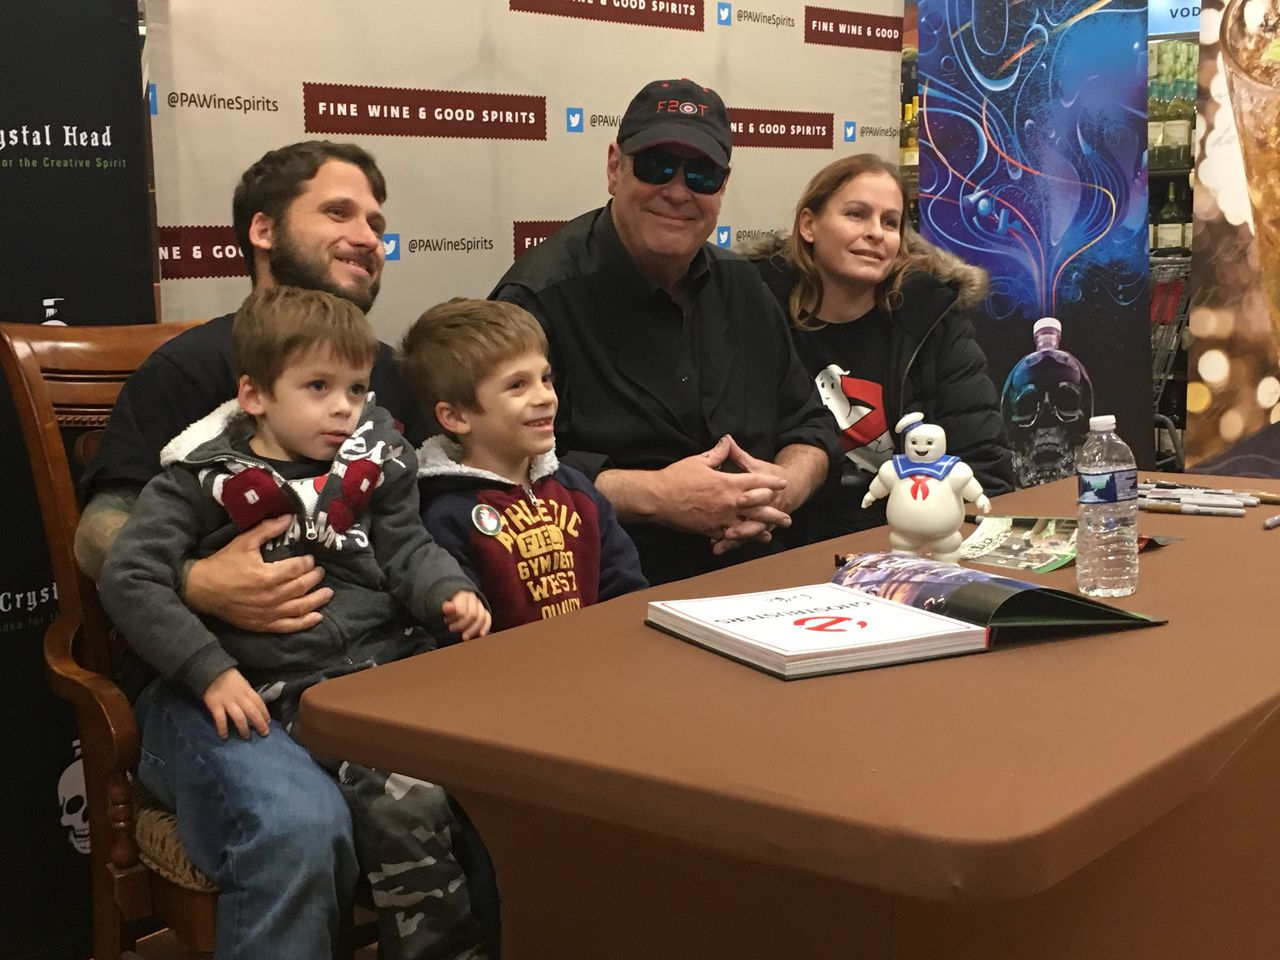 Dan Aykroyd Greets Fans, Signs Bottles Of Vodka (and Dvds, Records, And Toys) At Lancaster Event photo